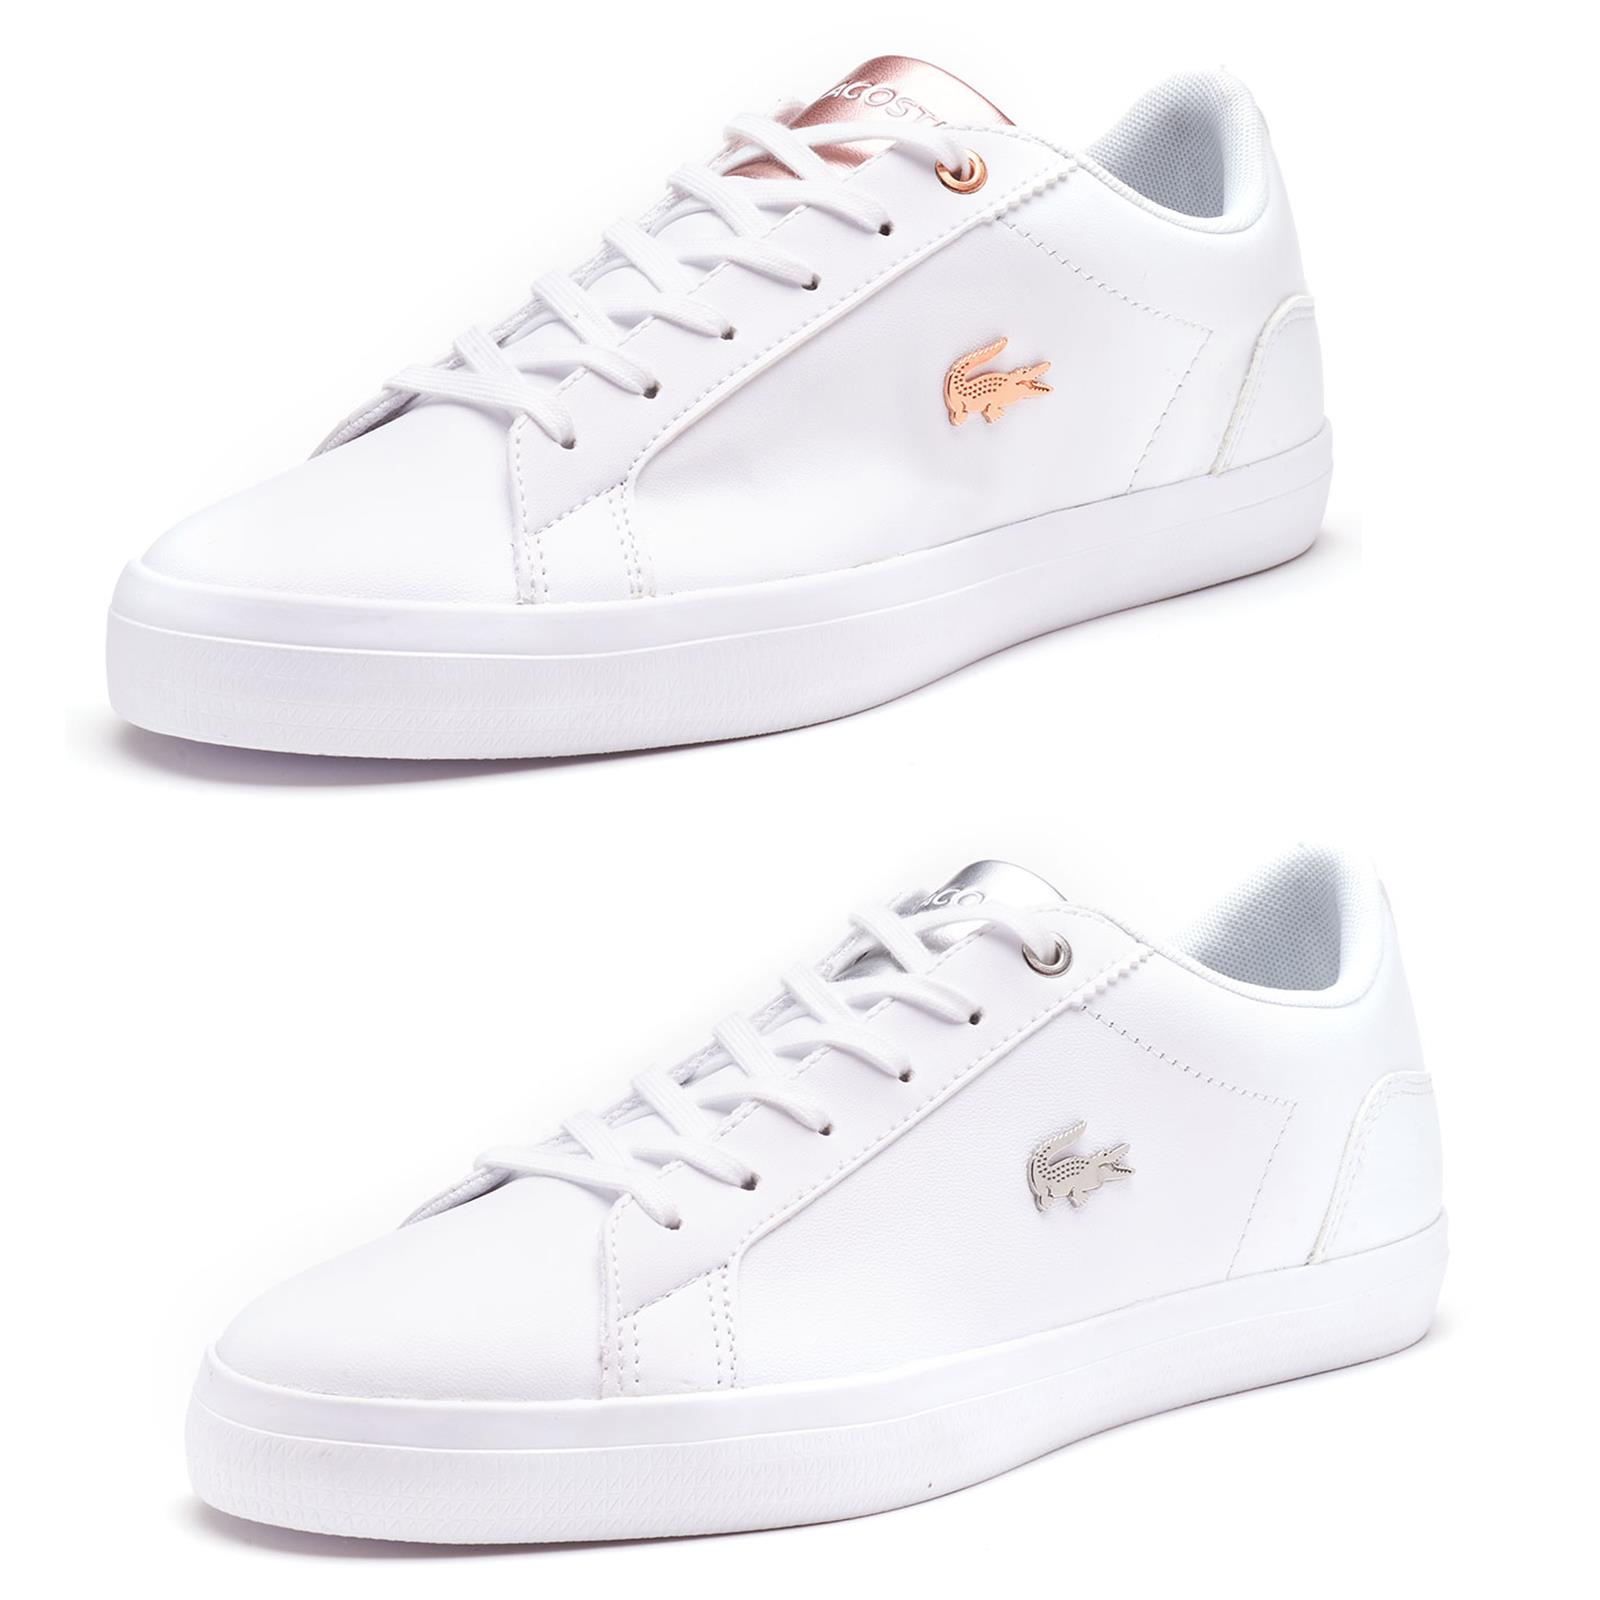 rose gold lacoste shoes